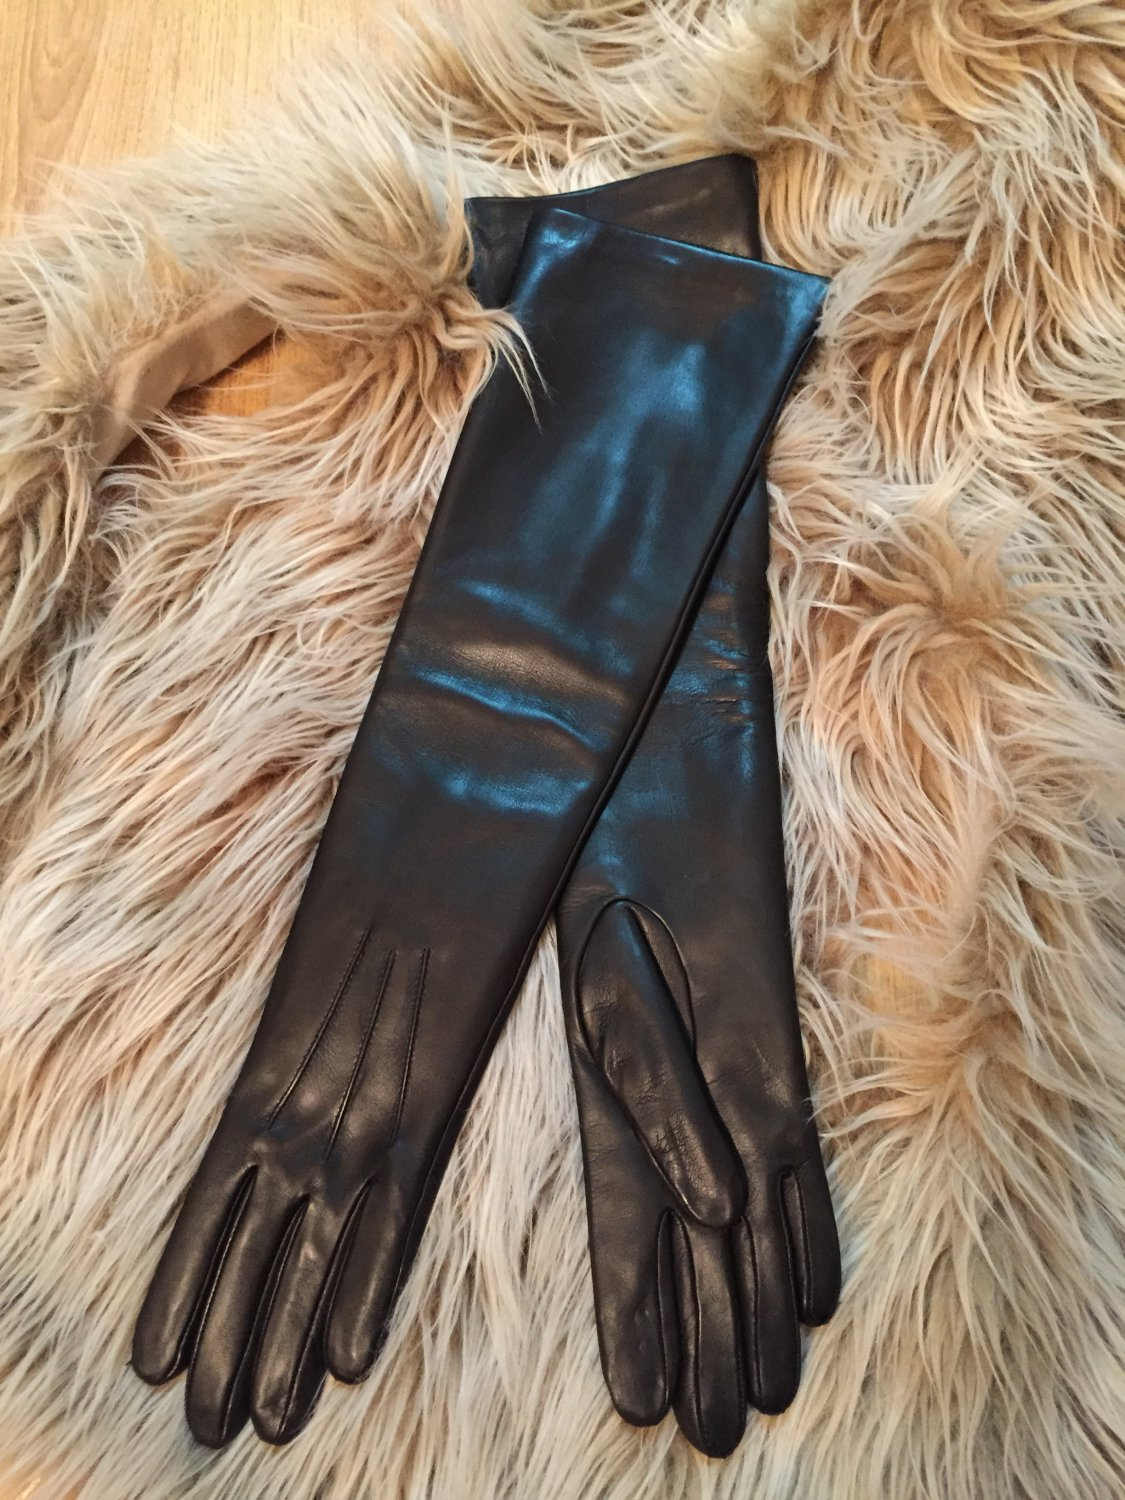 Long leather gloves, opera gloves, super soft 100% silk lining, dress gloves, 6,5 inches S